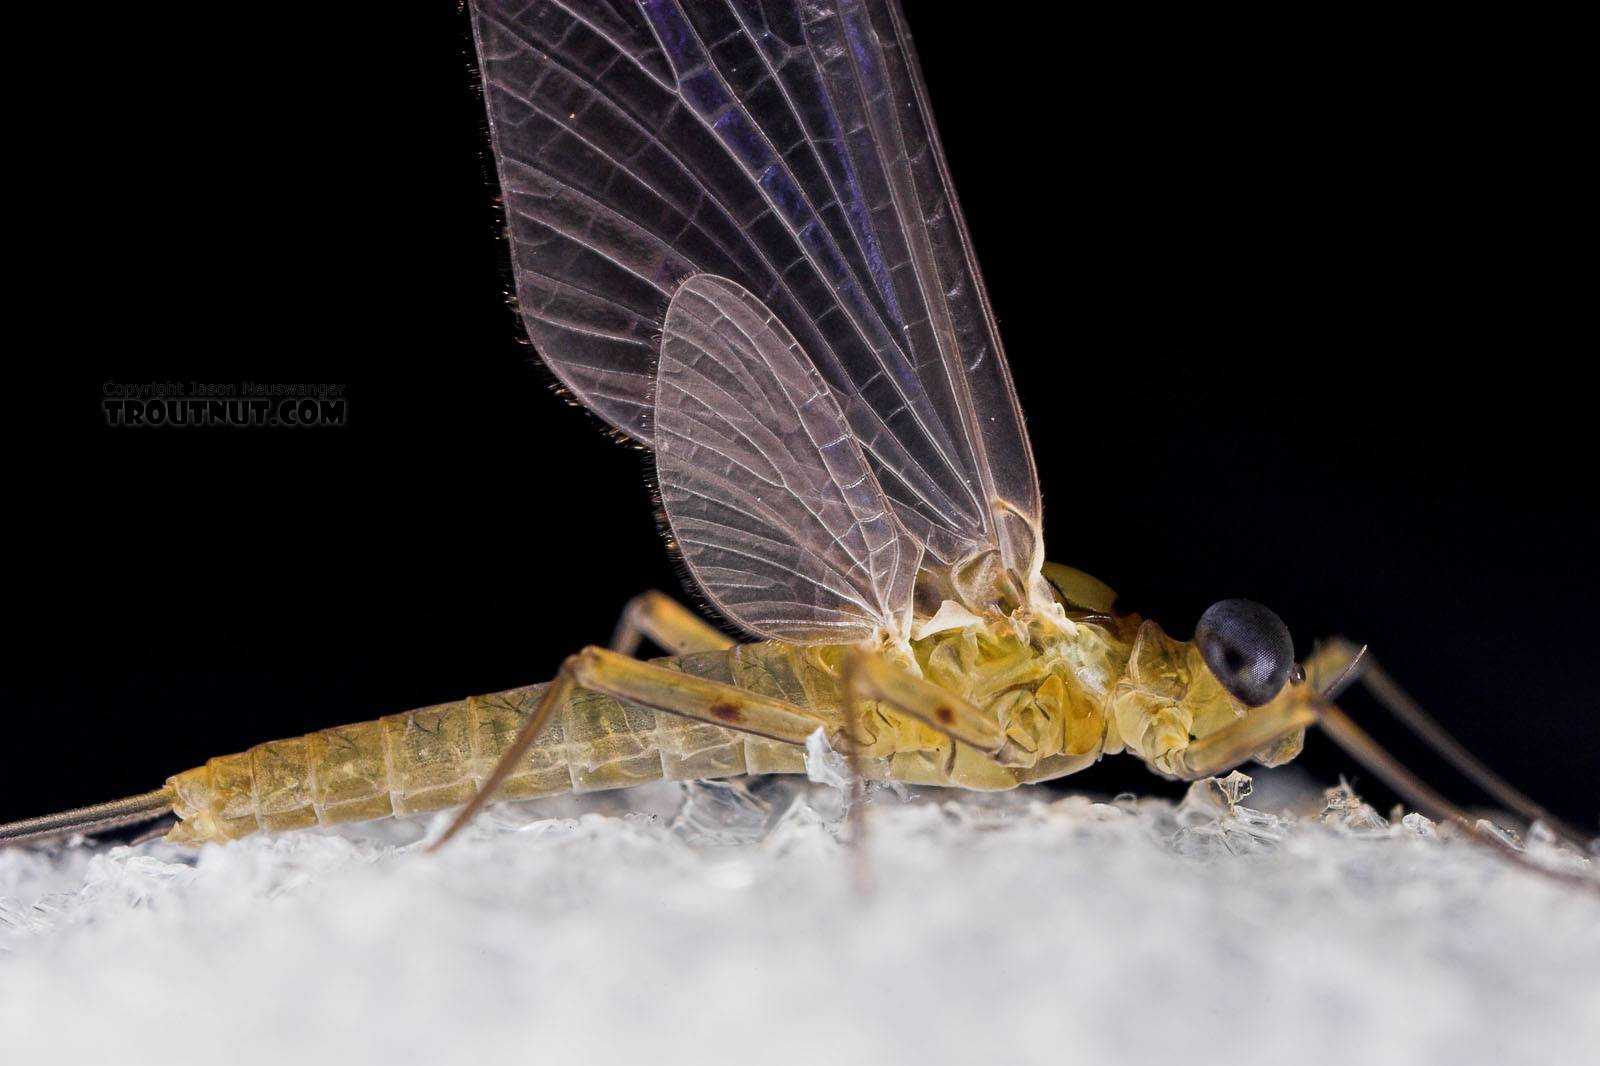 Male Epeorus frisoni Mayfly Dun from Mystery Creek #23 in New York